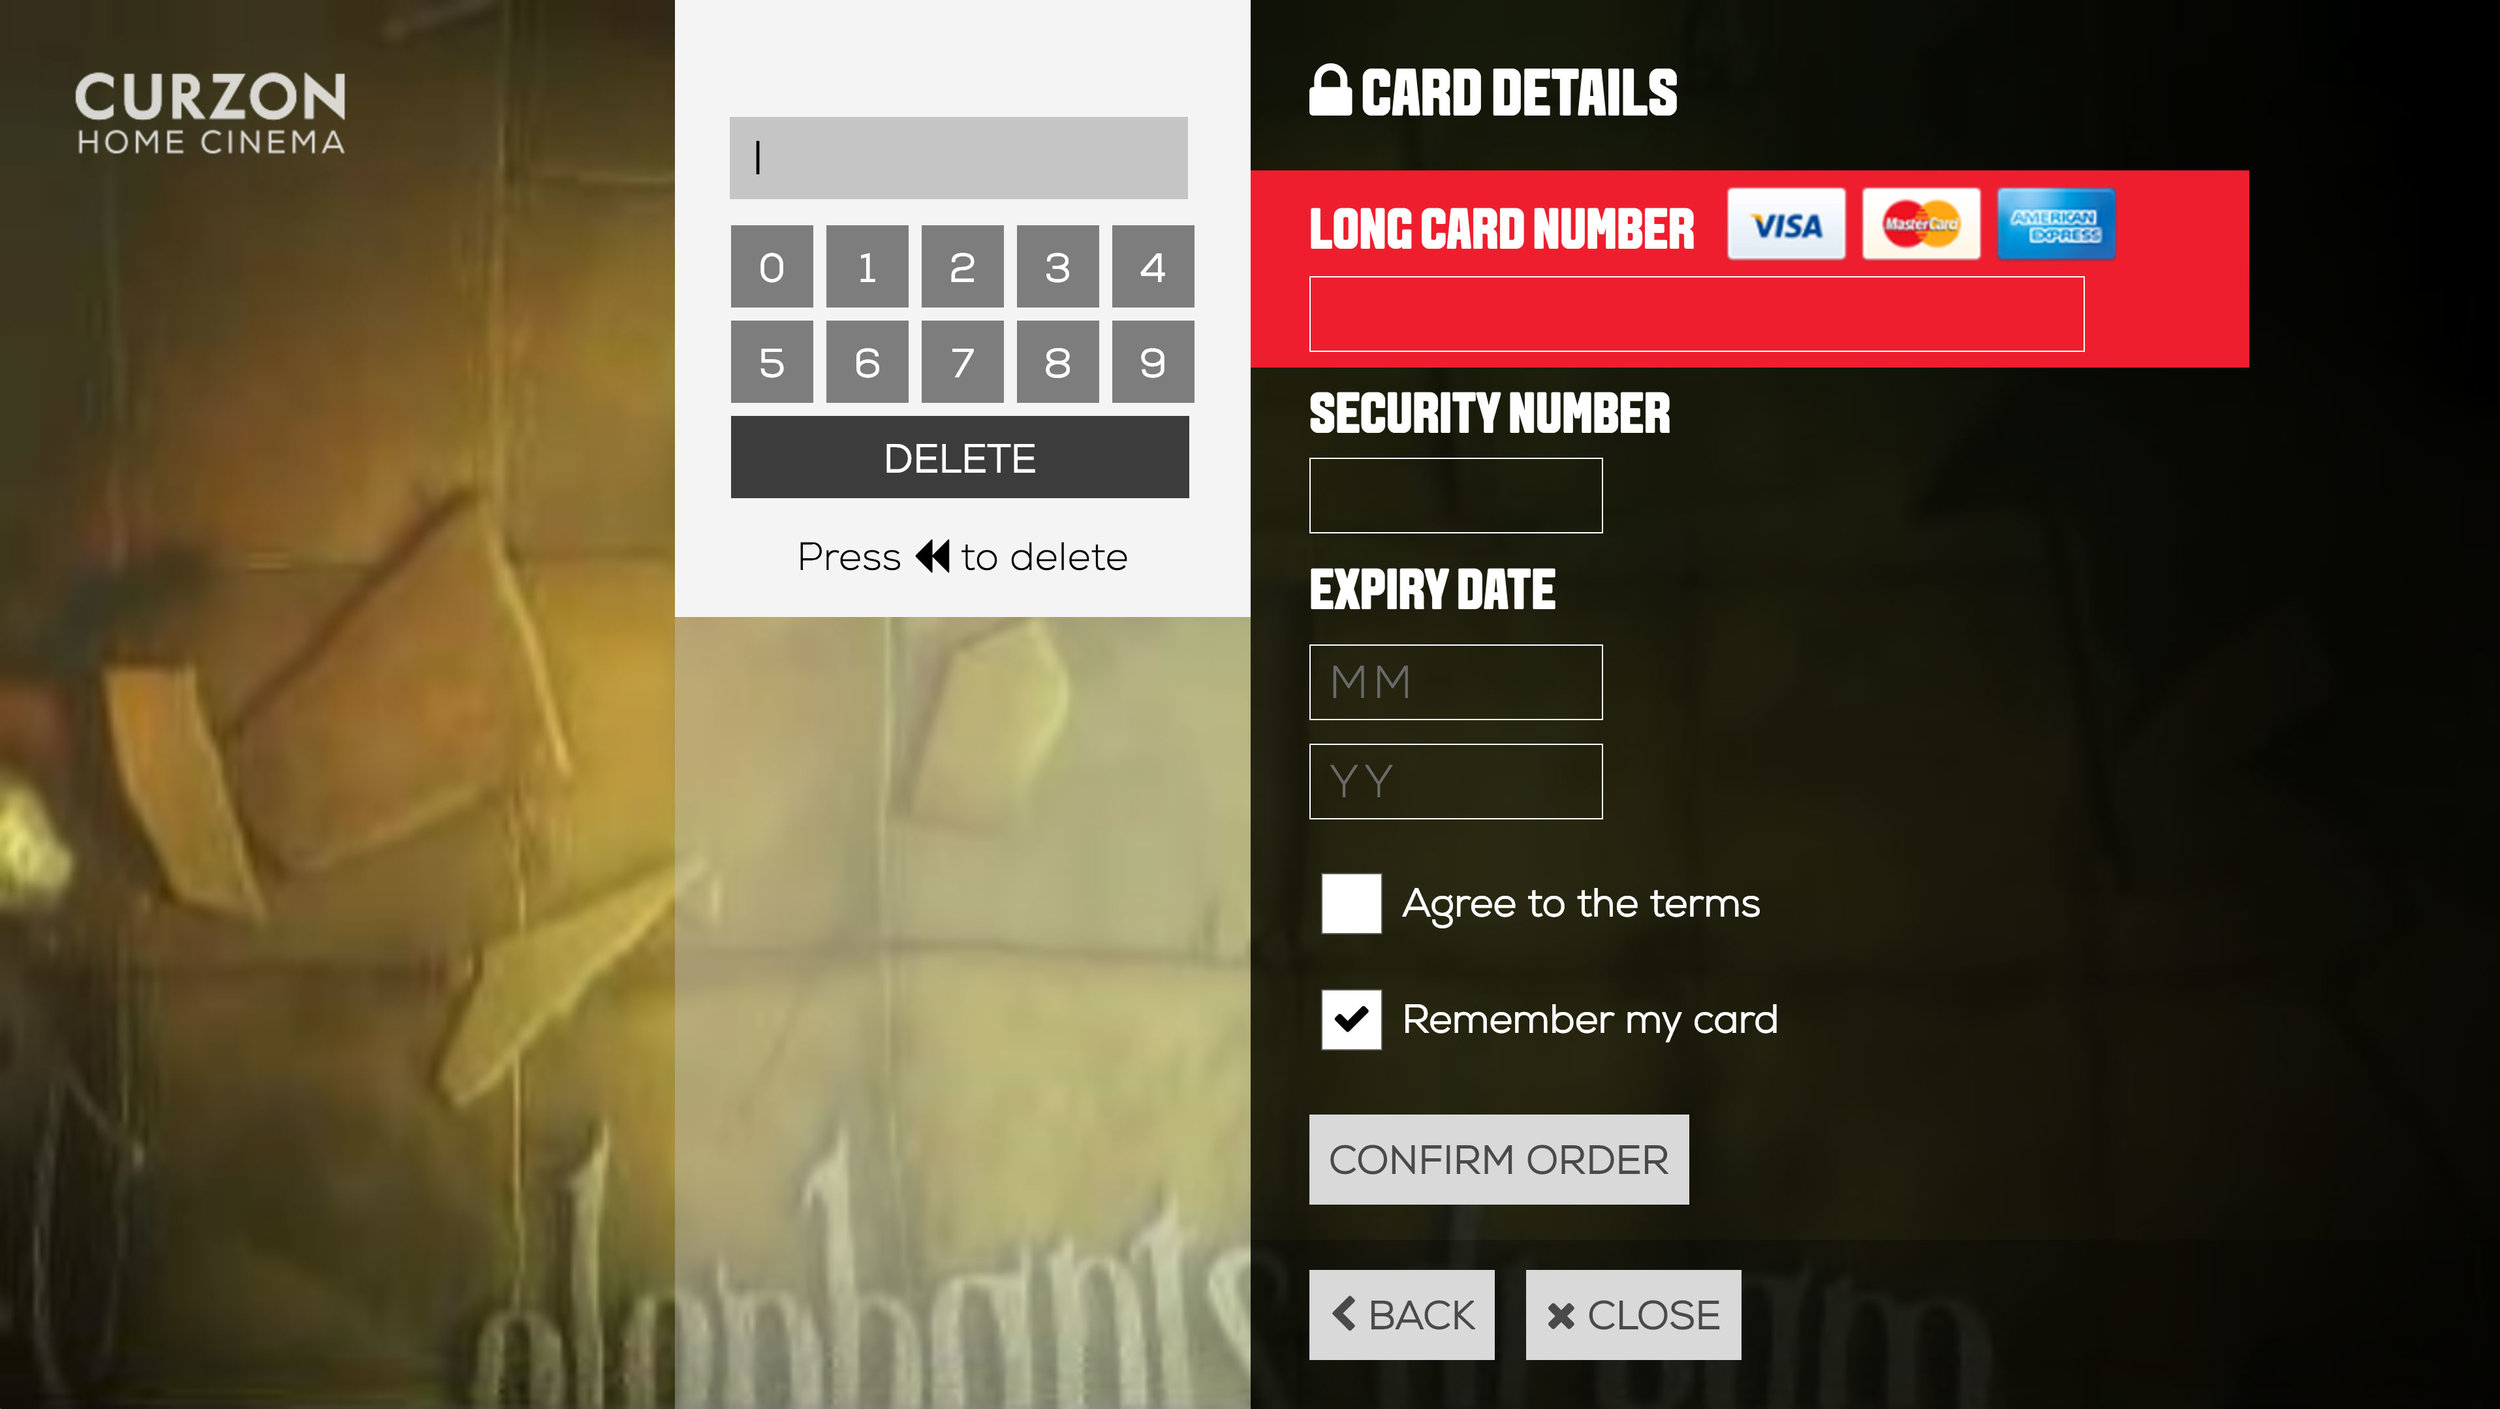 3. Enter all your card details